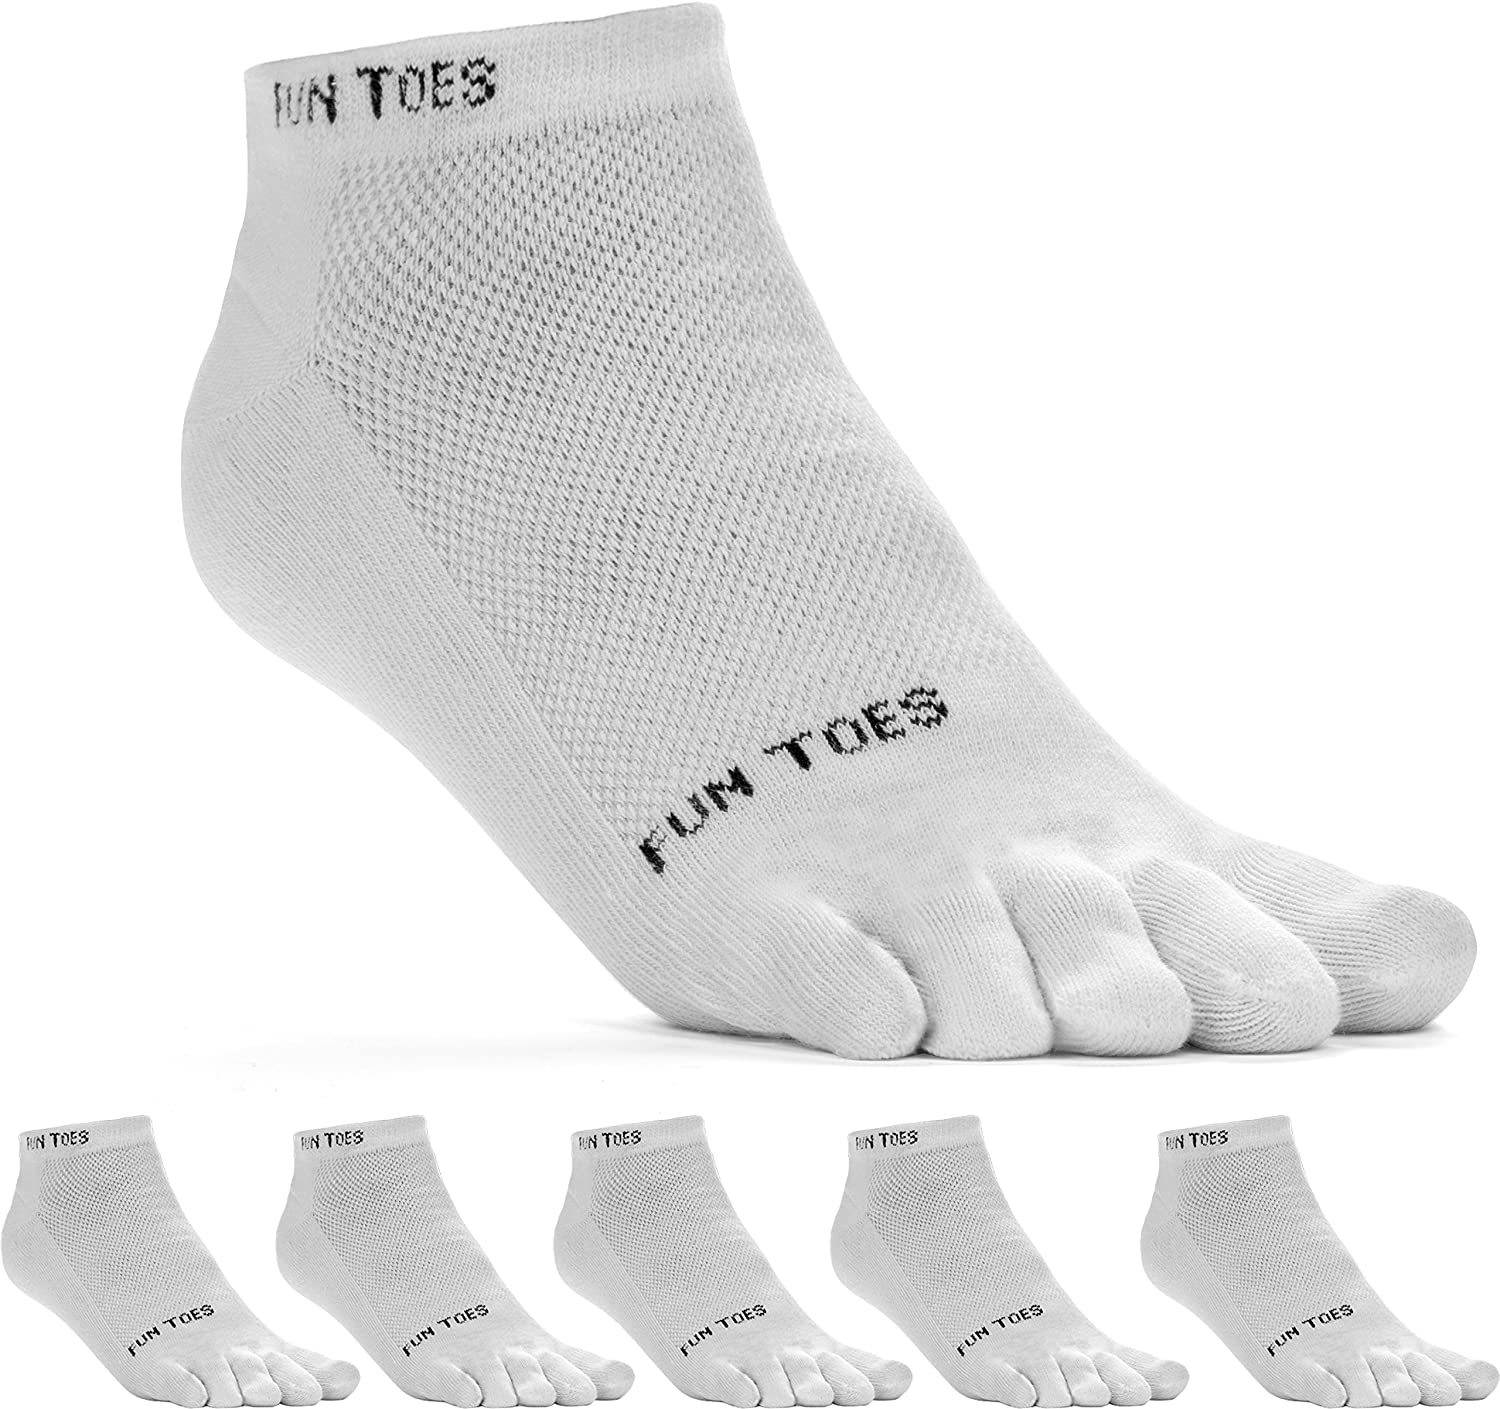 Size 6-12 FUN TOES Mens Toe Socks Lightweight Breathable-Value 6 PAIRS Pack